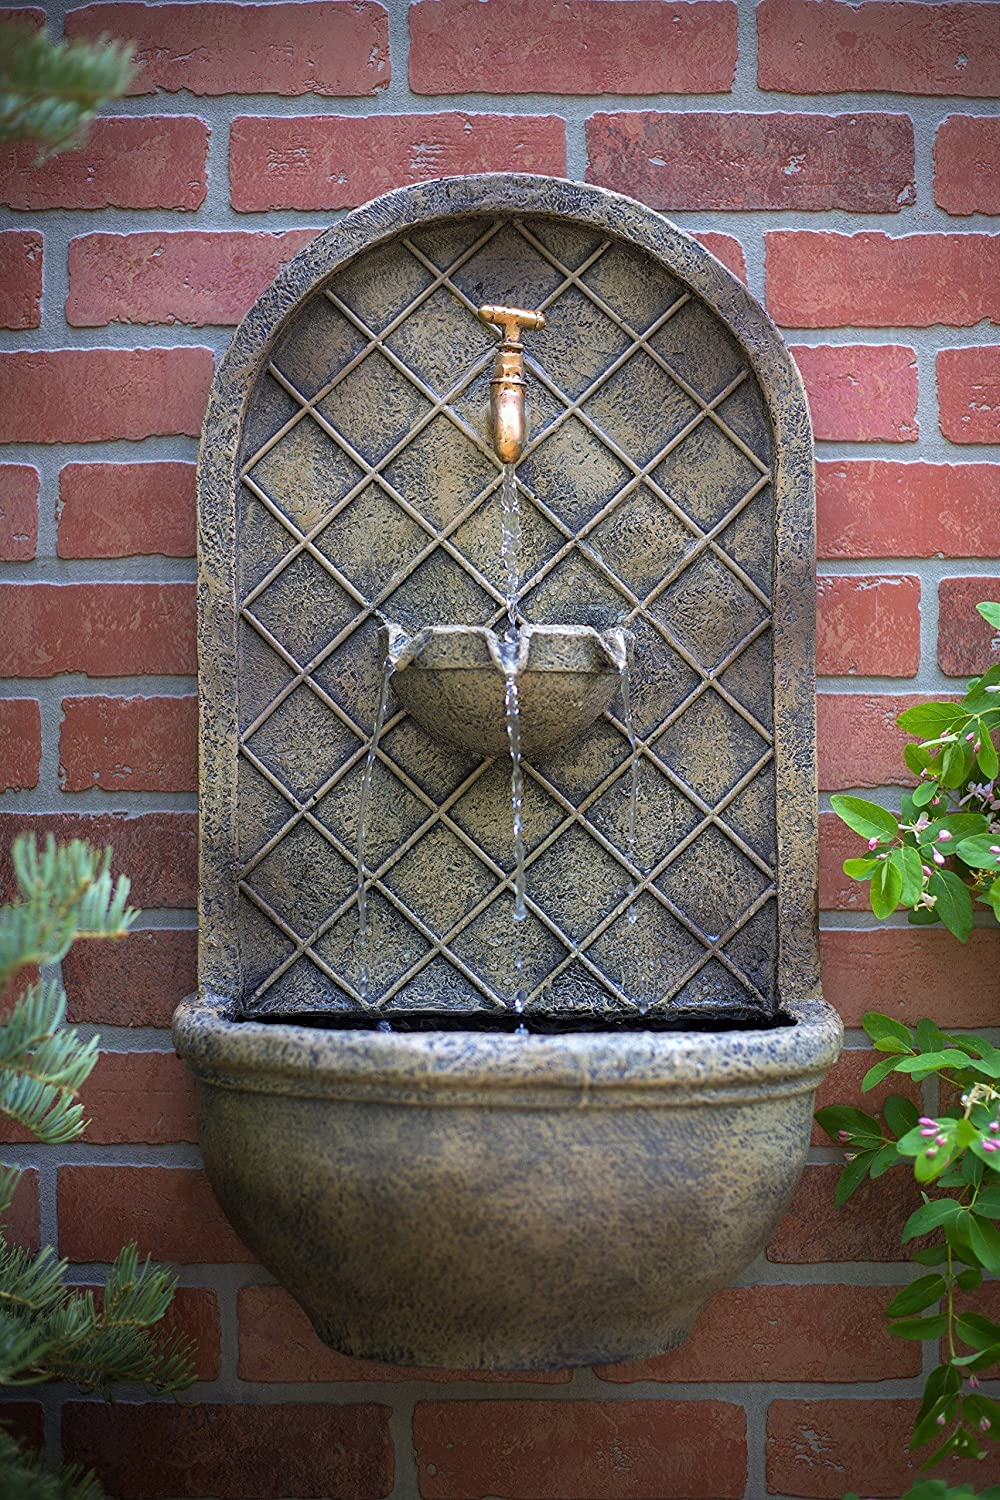 The Milano Outdoor Wall Fountain Florentine Stone Finish Water Feature For Garden Patio And Landscape Enhancement Amazon Co Uk Garden Outdoors